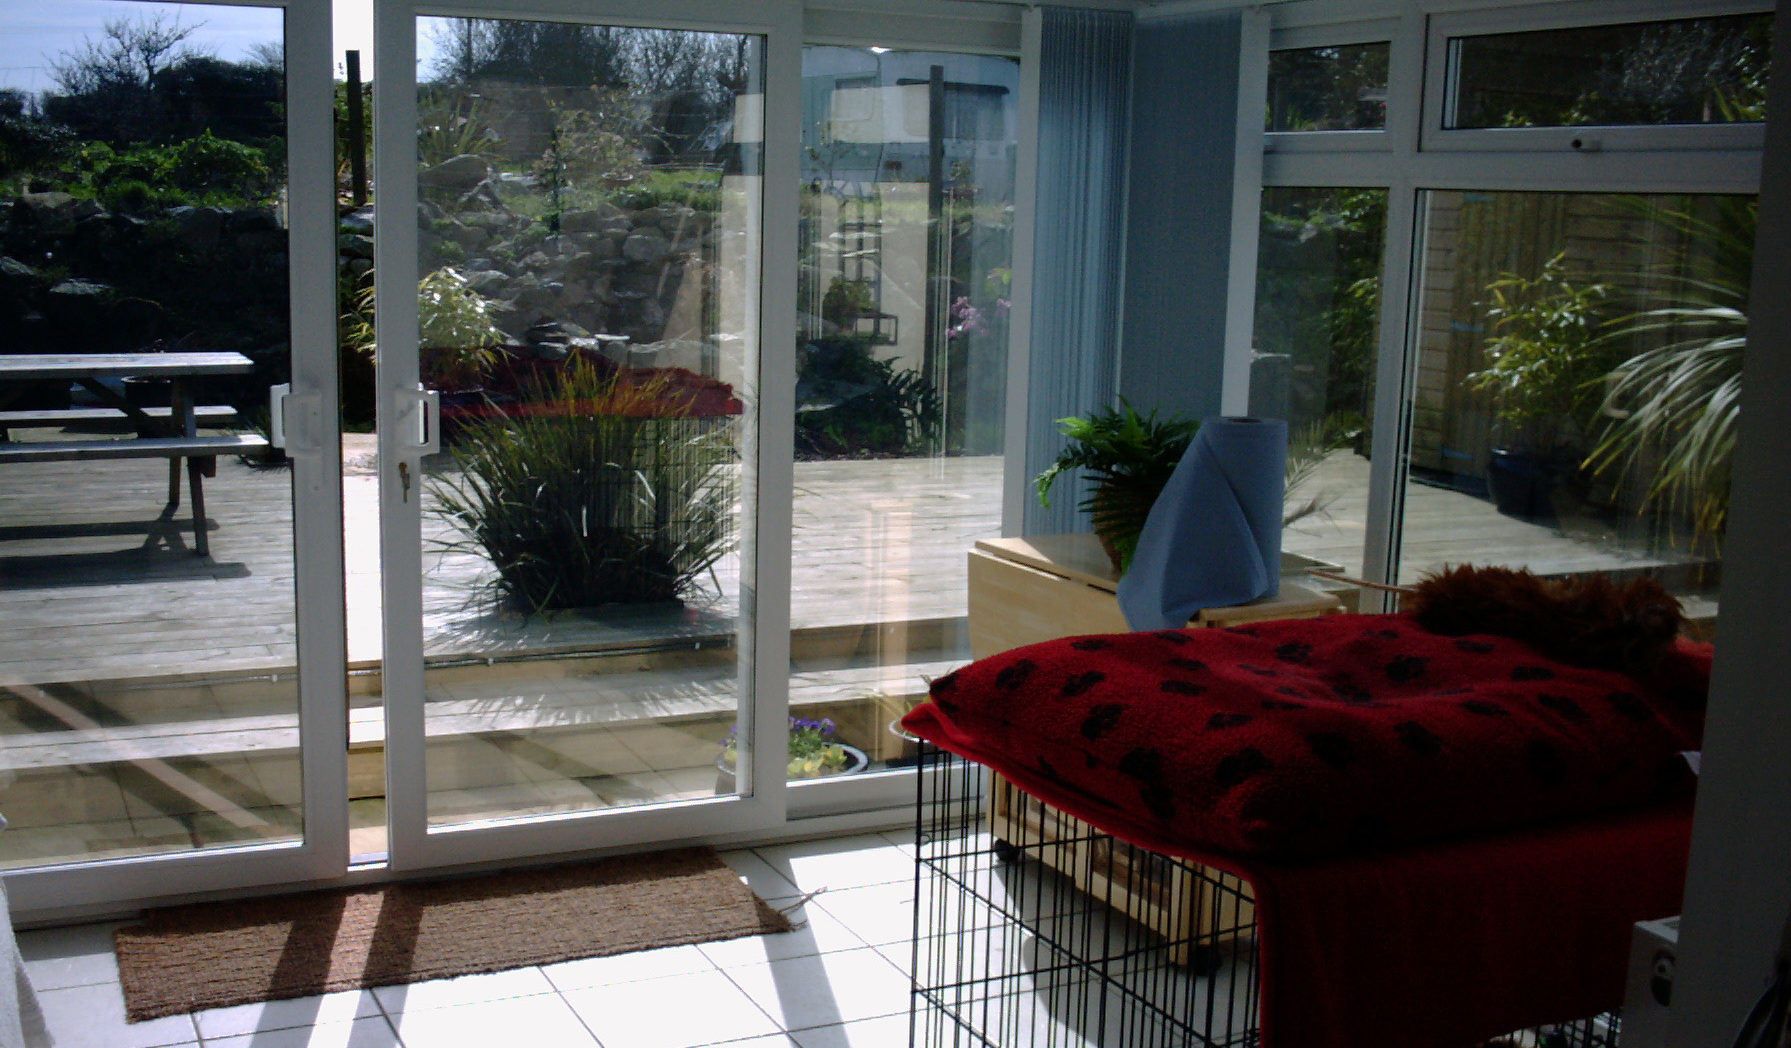 Carbis Bay Cornwall Conservatory vertical glass window tinting with solar film by Tinting Express Barnstaple Devon UK